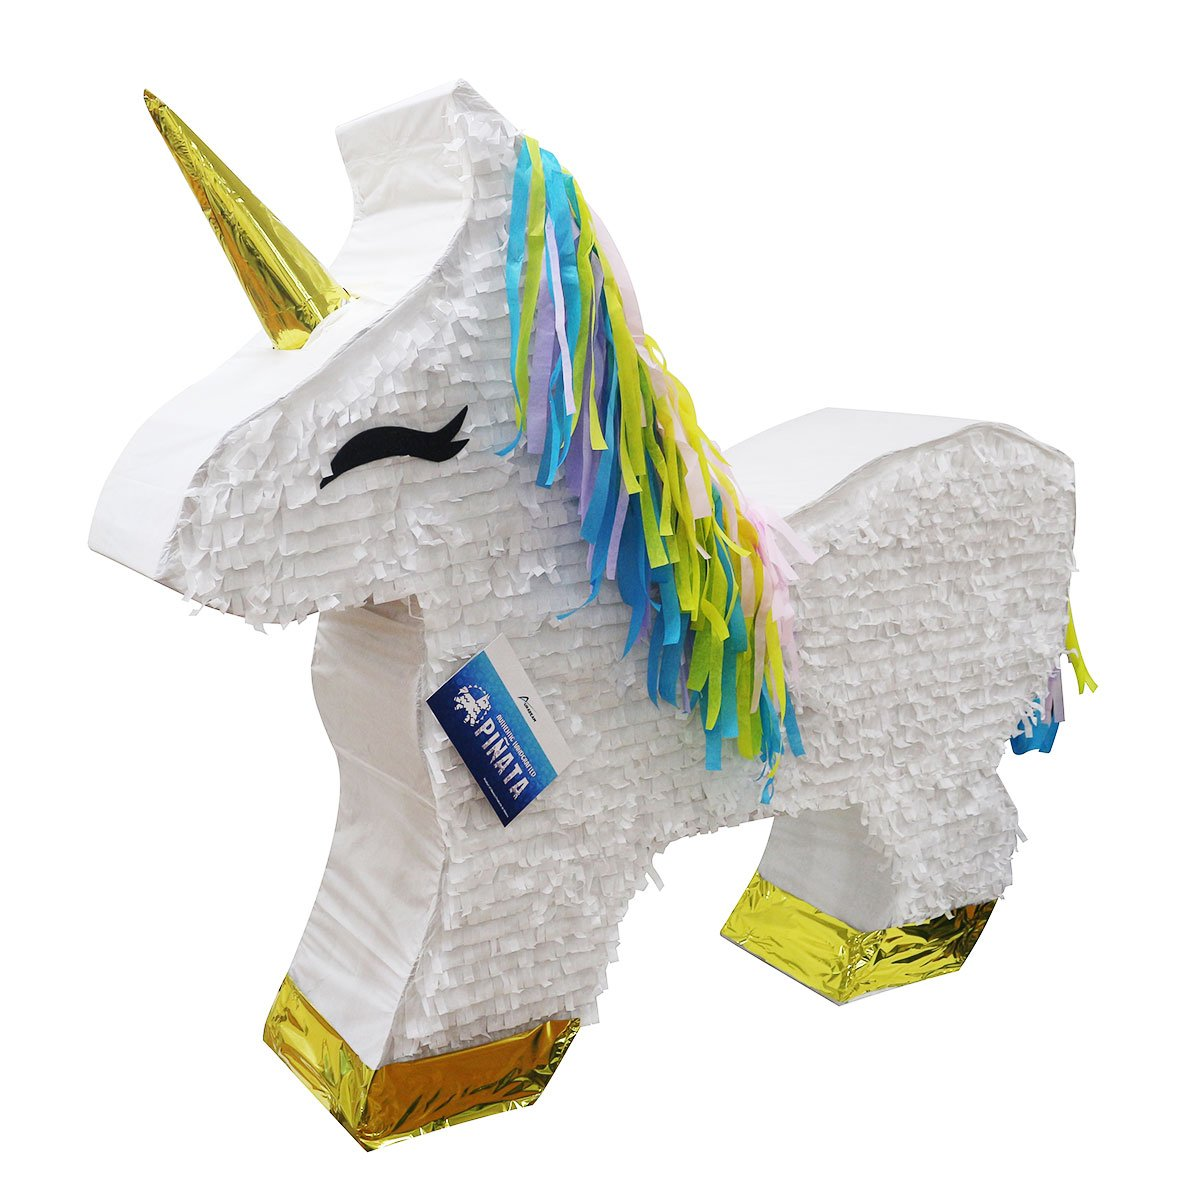 GIANT 4' White Unicorn Pinata w/Hair 40'' - Huge Mexican Piñata - Handmade in Mexico (Gigantic Sized)